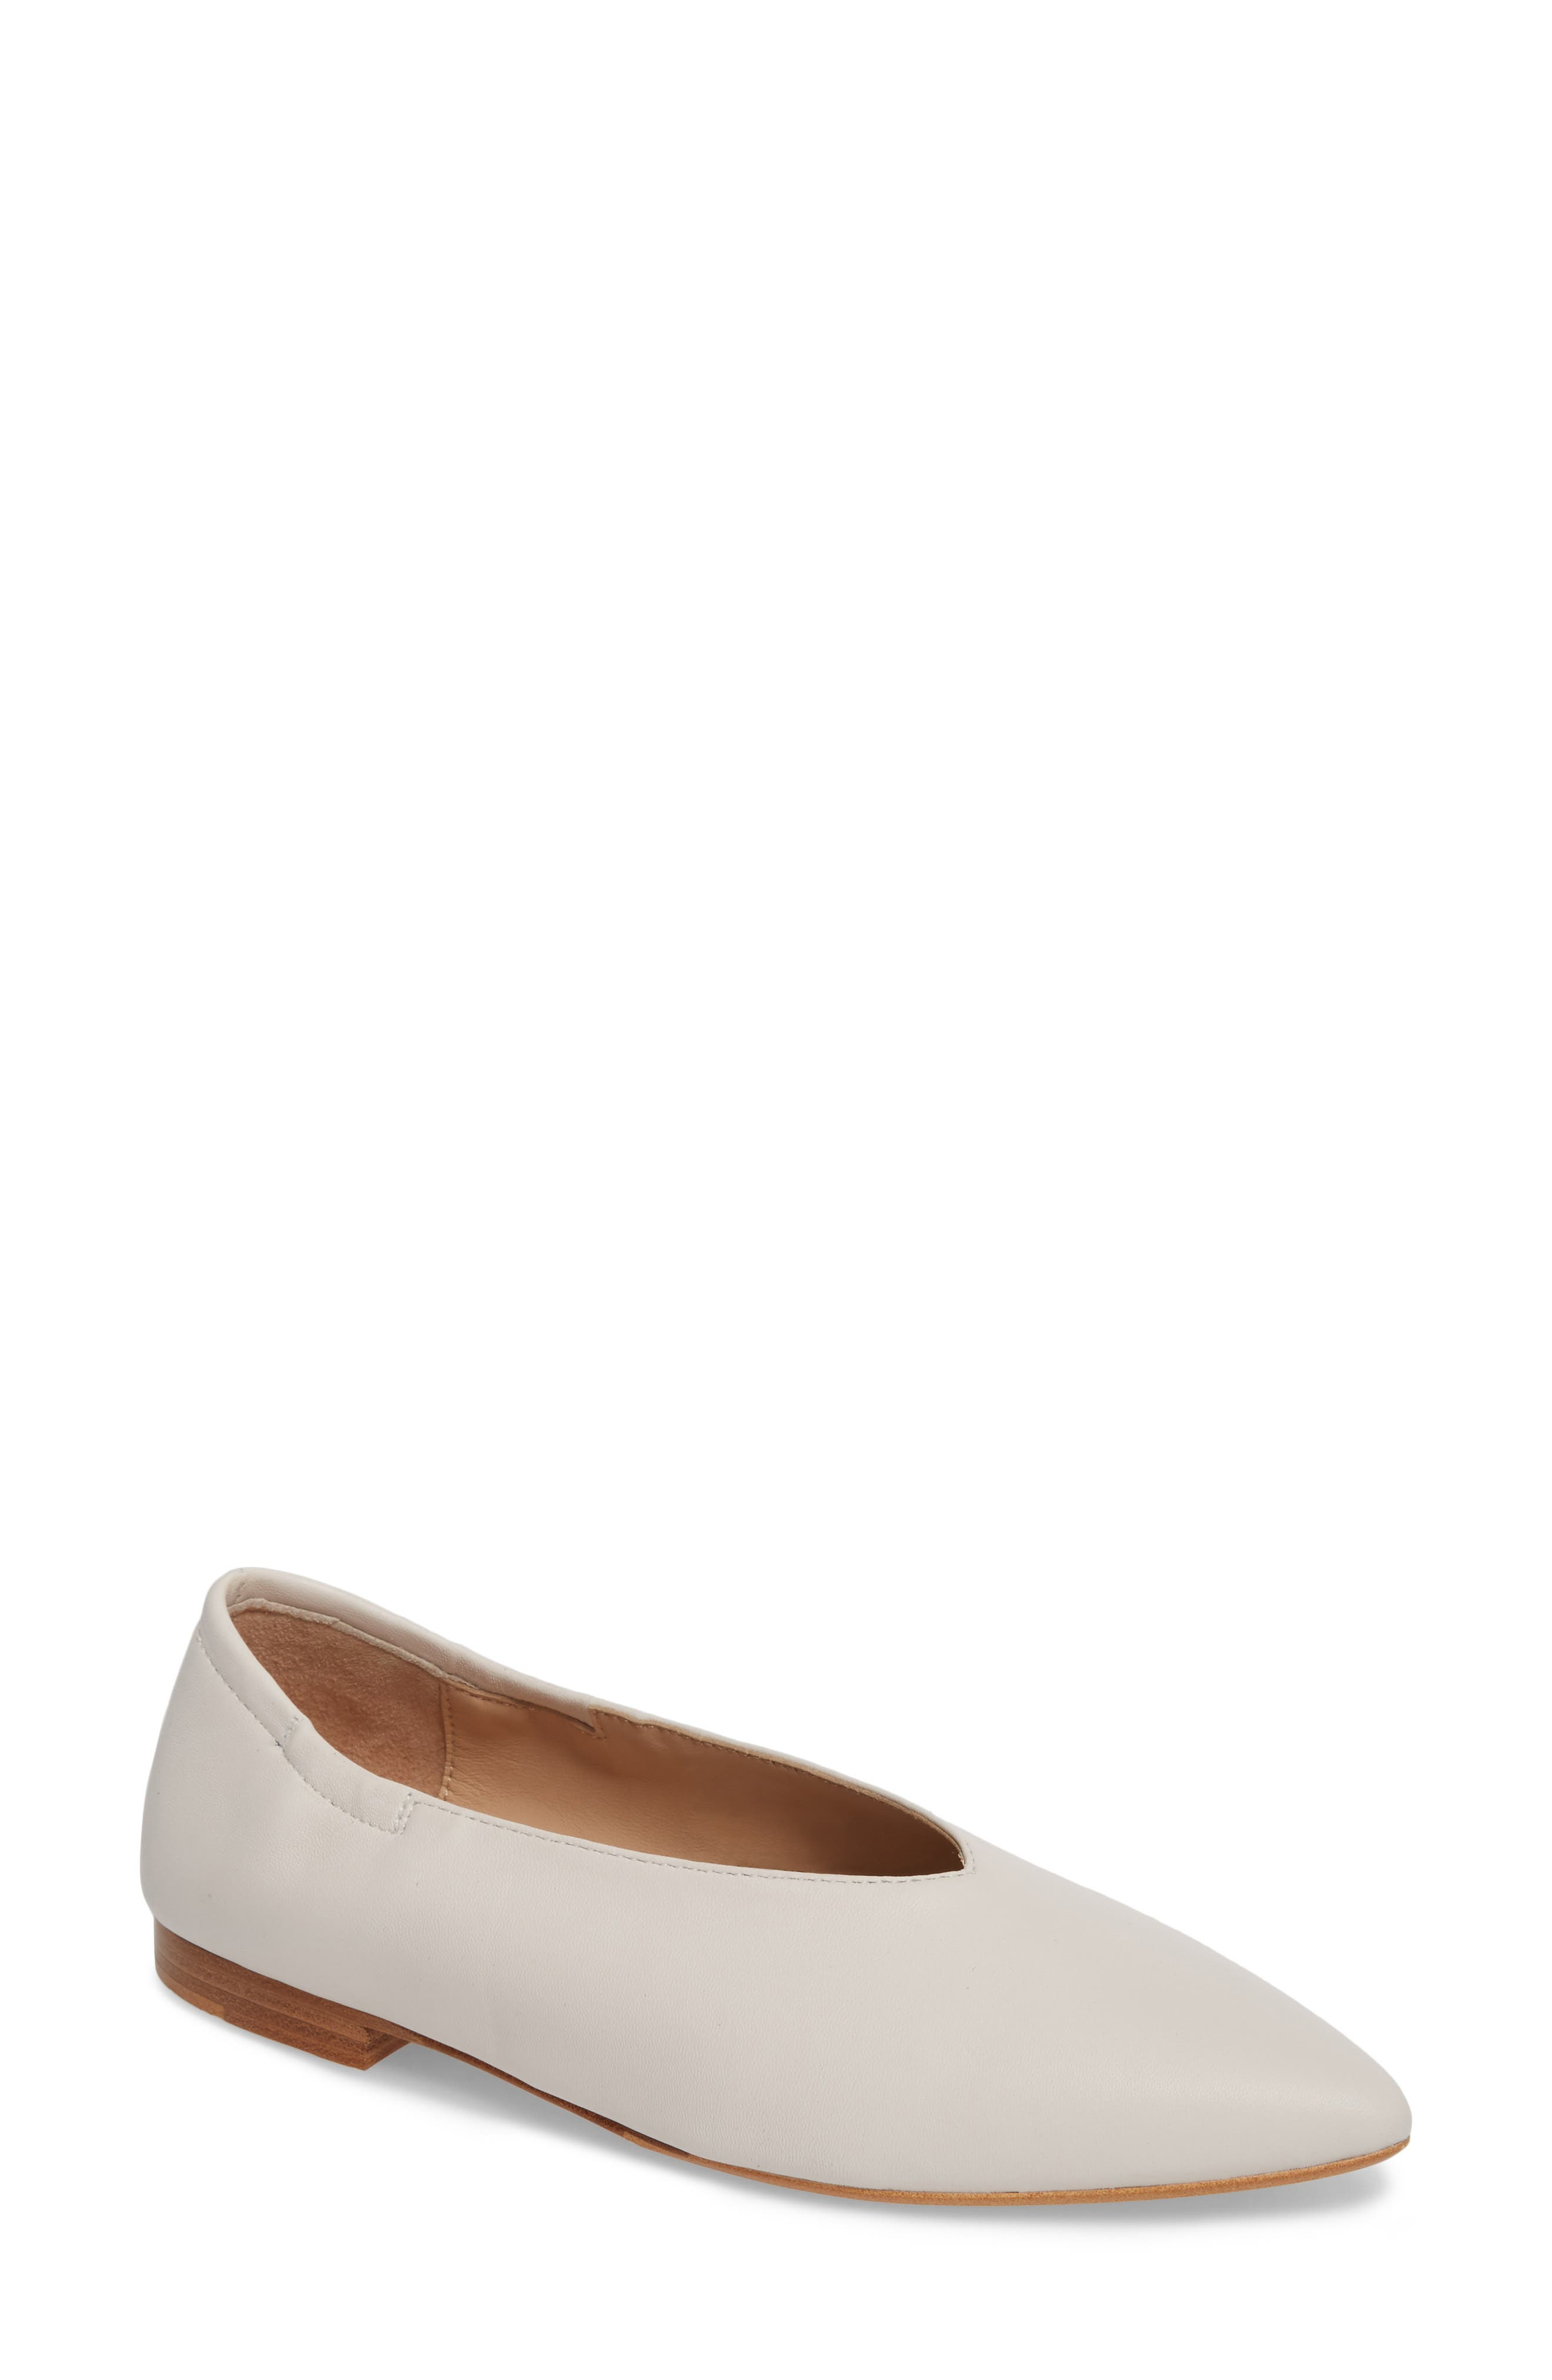 POUR LA VICTOIRE Women'S Leather Pointed Toe Flats in Ivory Leather